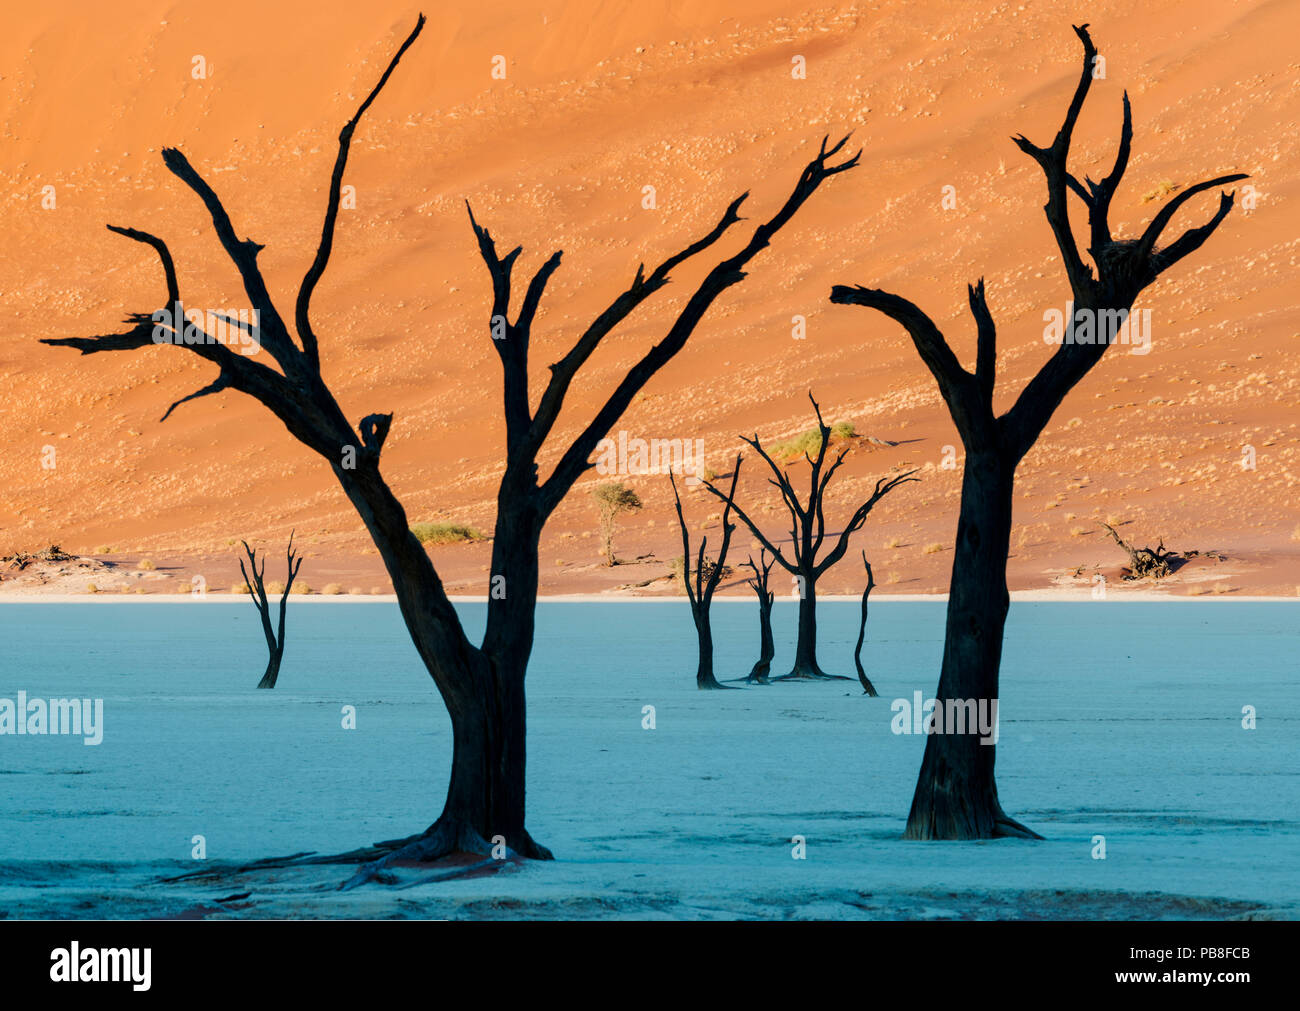 Dead Vlei, with dessicated 900 year old trees standing in the salt pan surrounded by towering red sand dunes. Namib-Naukluft National Park, Namibia. June 2013. - Stock Image